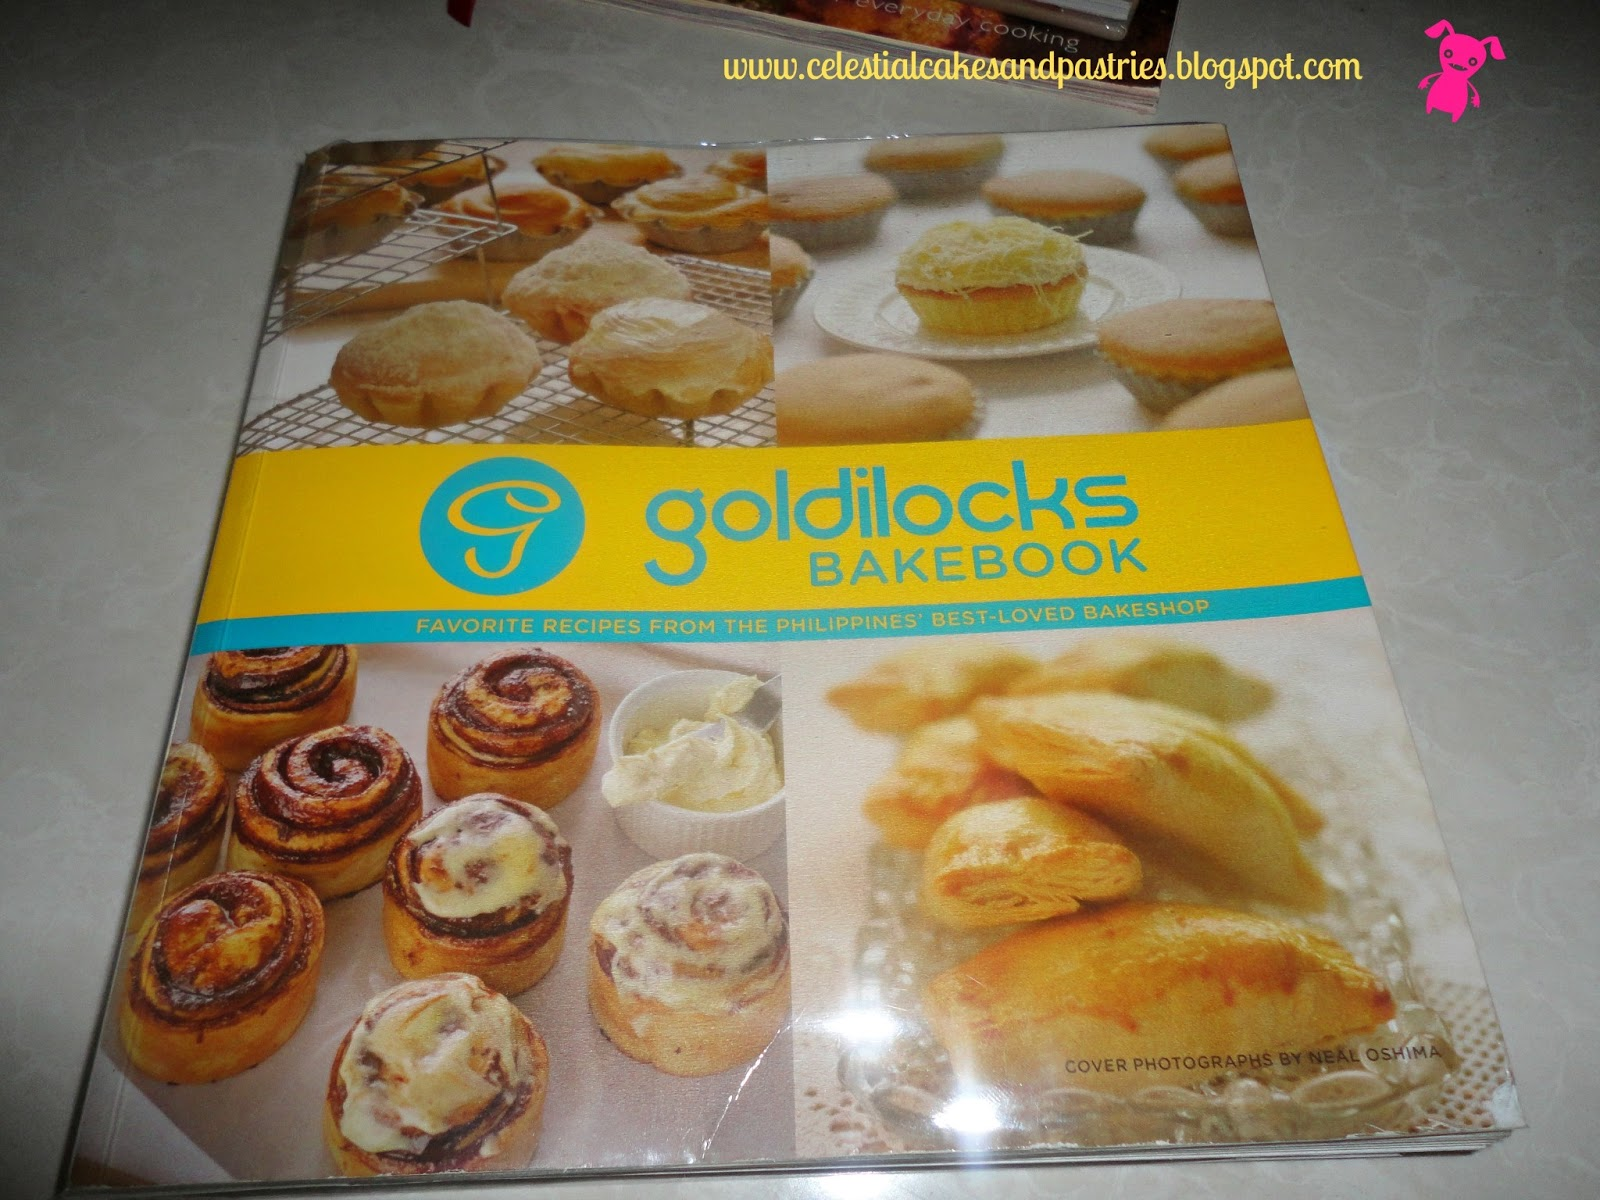 Celestial cakes and pastries book review goldilocks bakebook book review goldilocks bakebook forumfinder Image collections